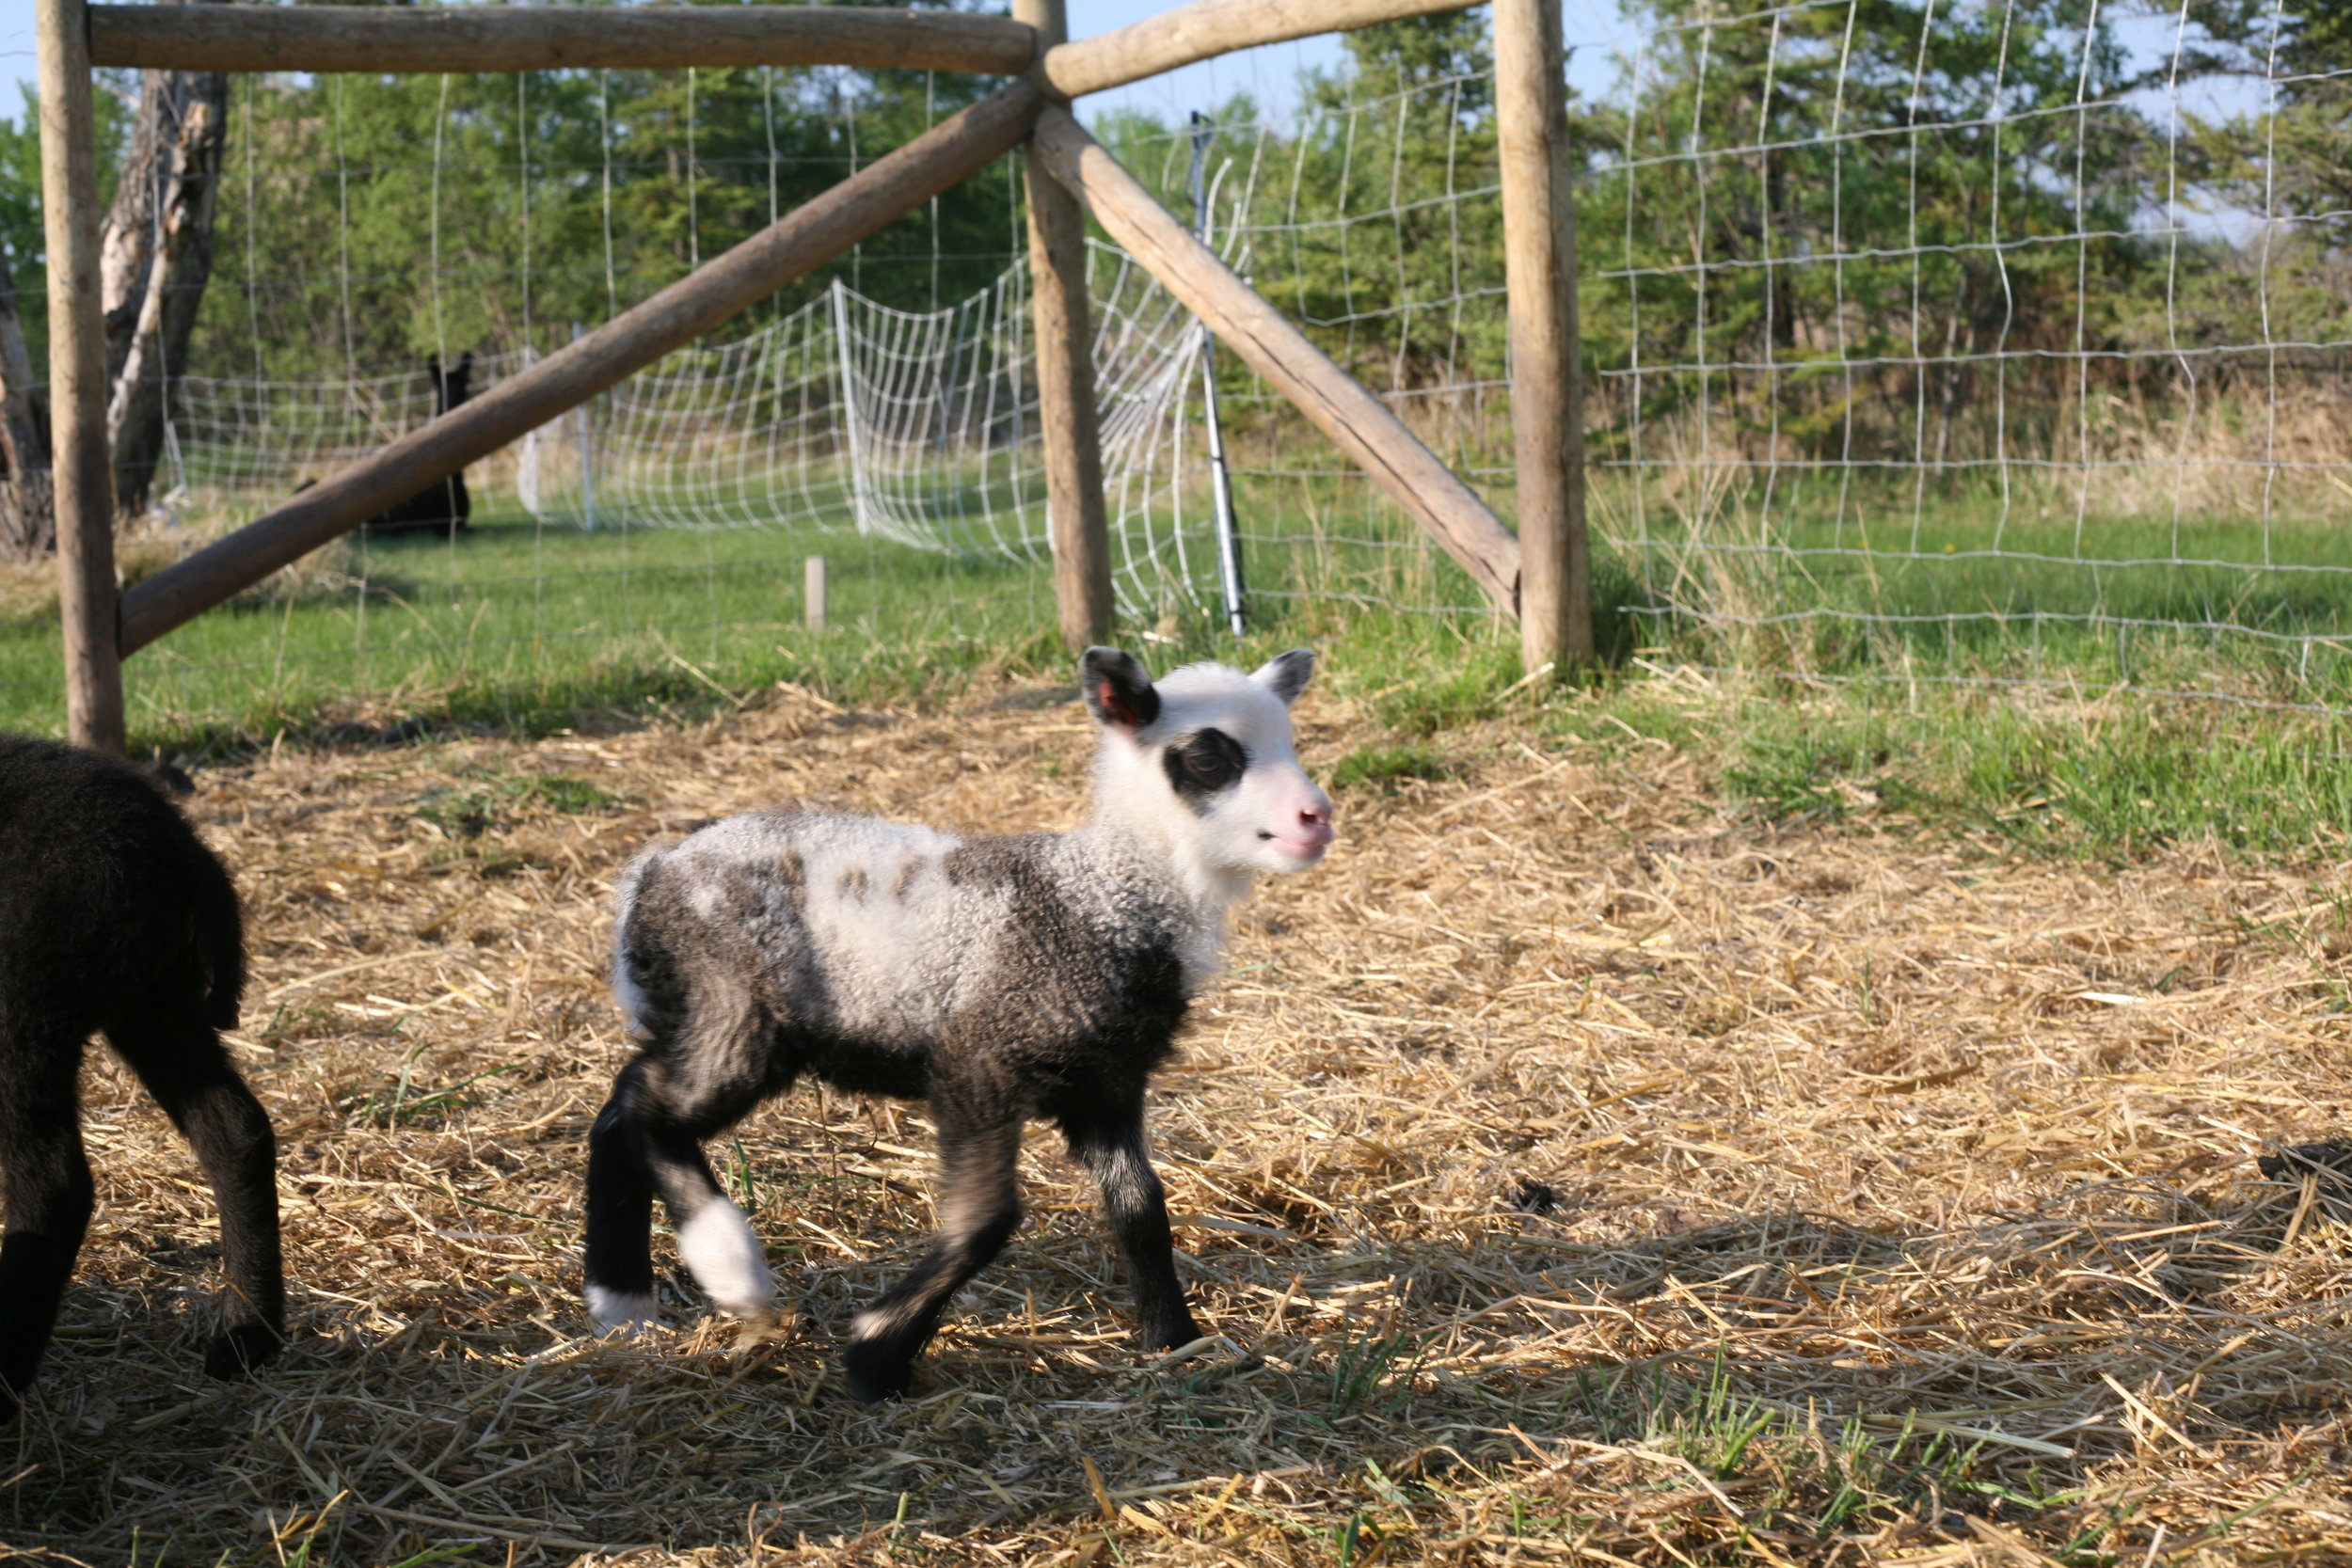 This ewe lamb was born on May 23, 2018 weighing 2.25kg. Her mother is Nora and the sire is Muddy, both are purebred shetland sheep. She has a twin sister. She is still so tiny, but has started playing with all the other sheep. She is very mindful of where her mom is, and will stick close by most of the time. Her colouring is lovely, and was a shock, as this mom usually only has dark brown lambs!